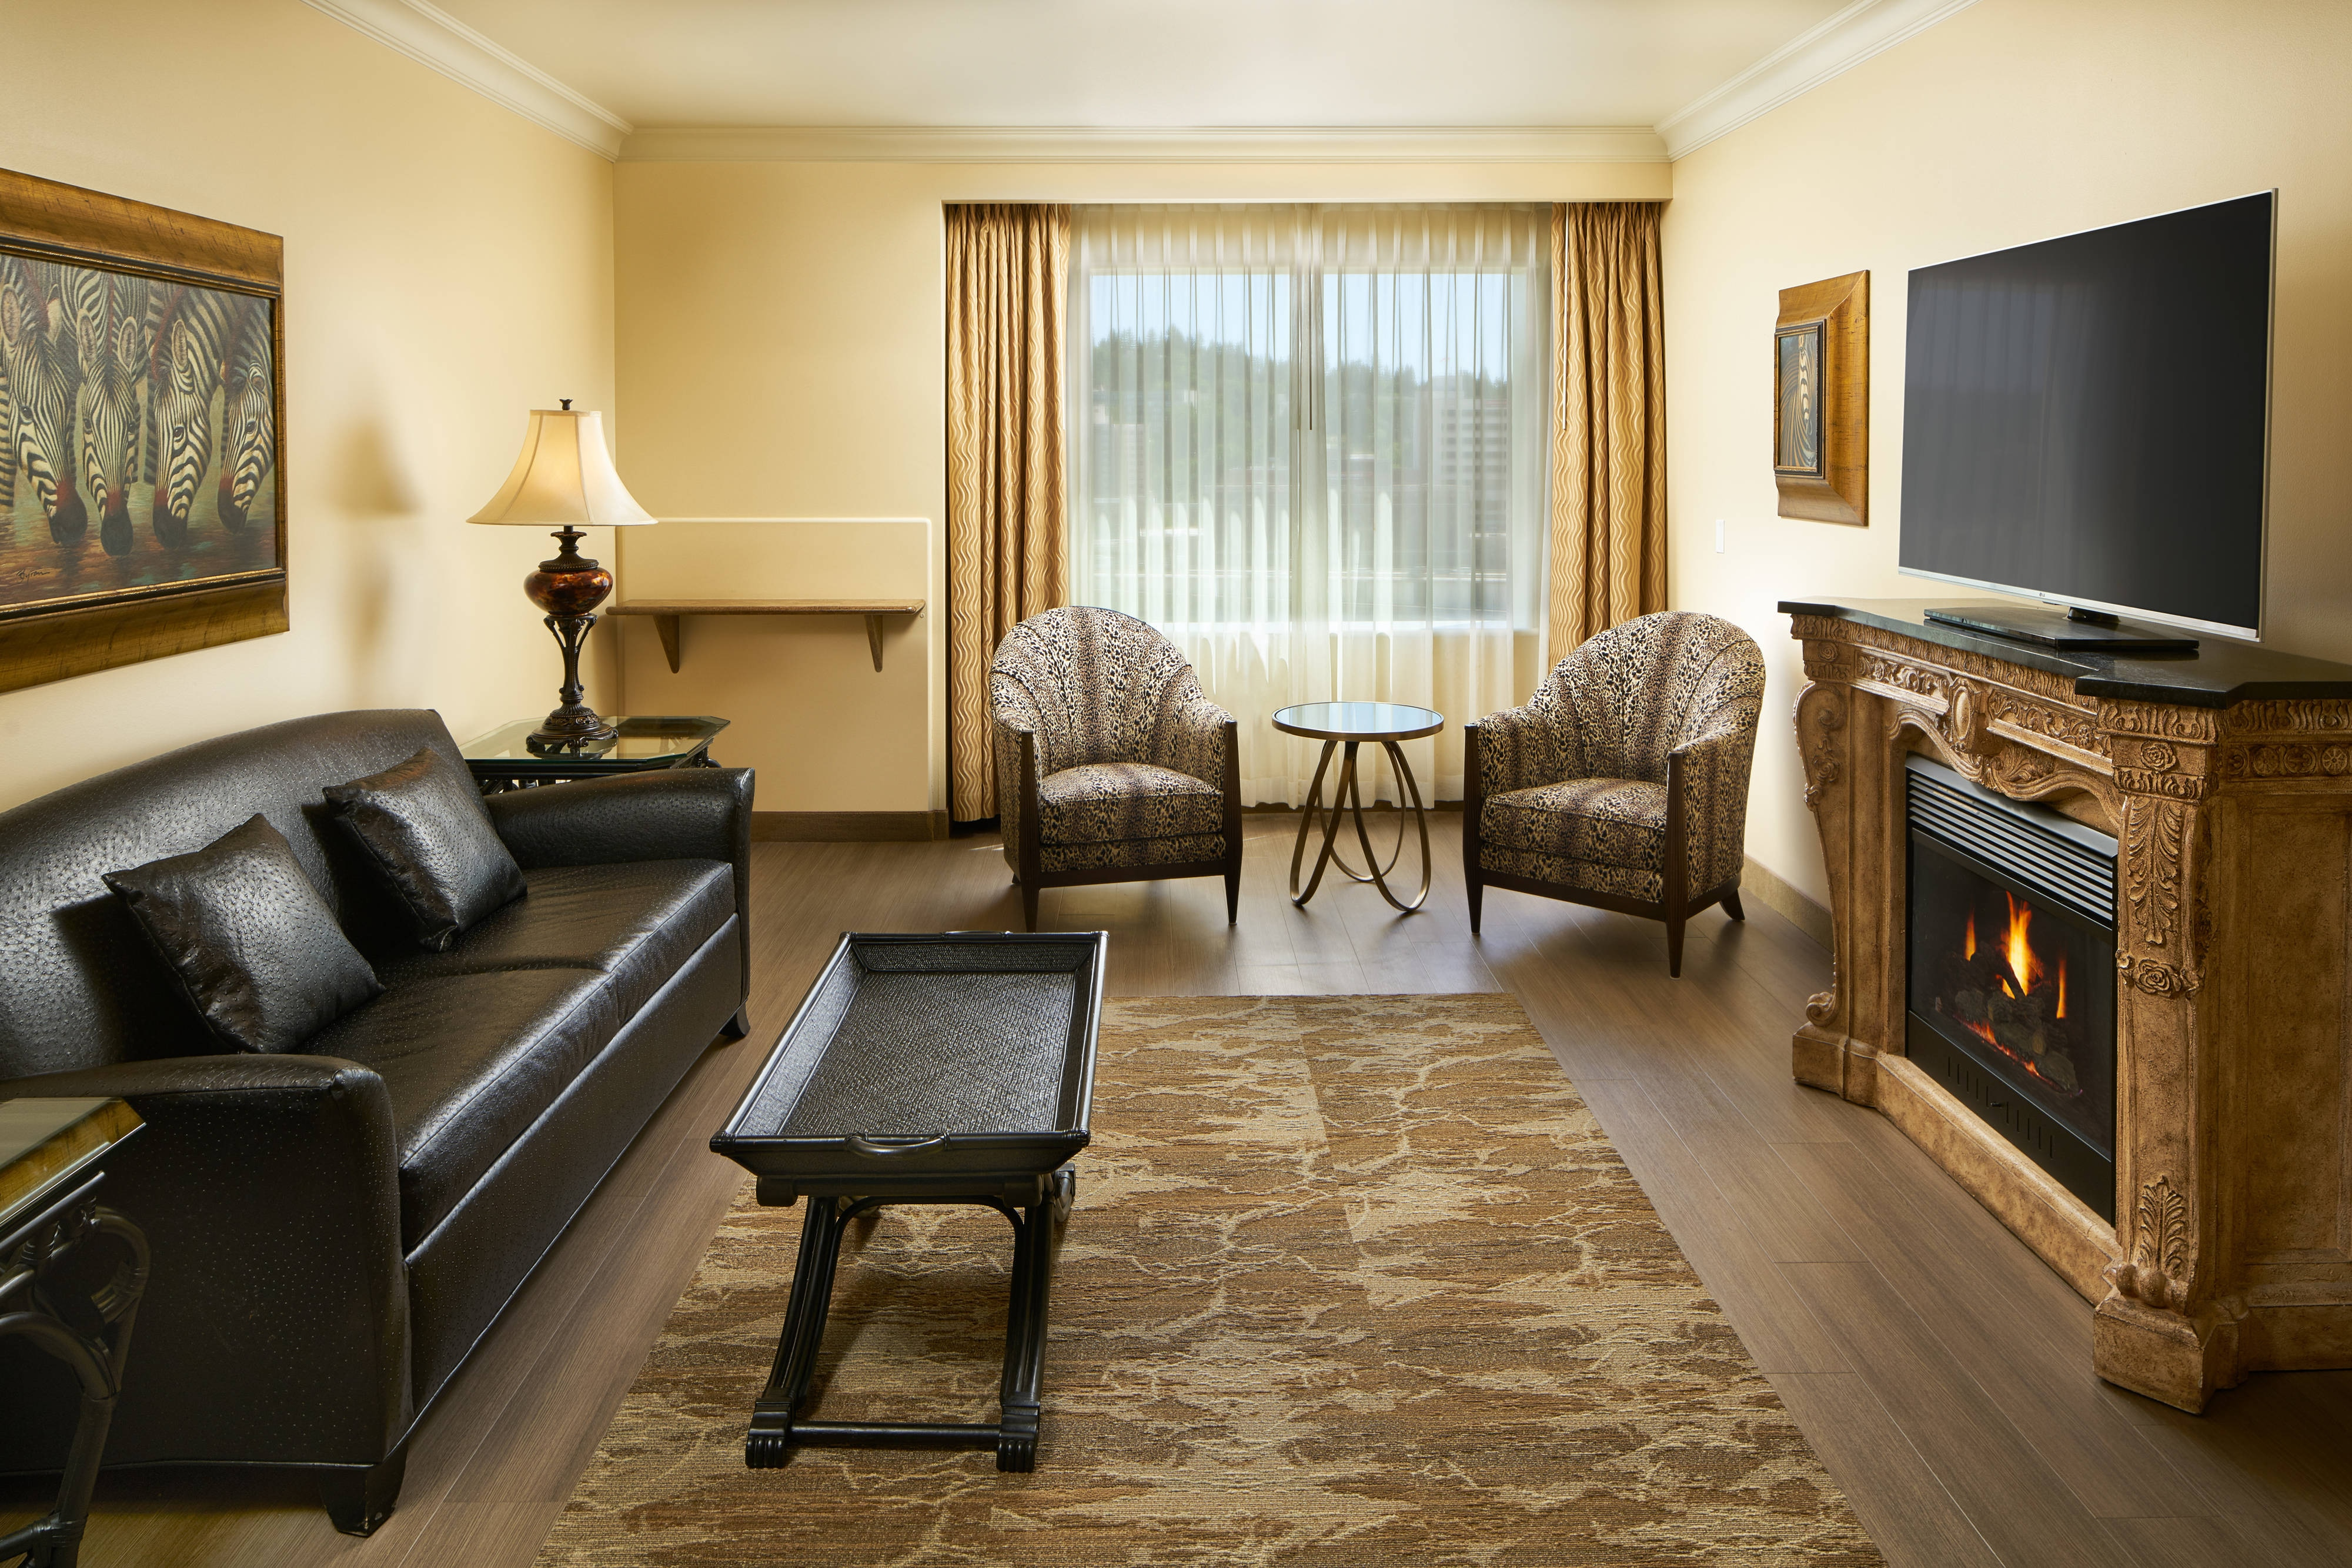 Hotels In Spokane Wa With Hot Tubs In Rooms